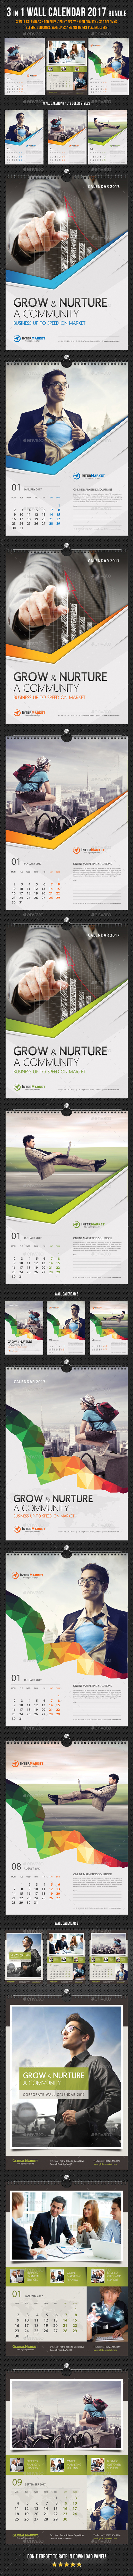 Business Wall Calendar  Bundle  Psd Templates Template And